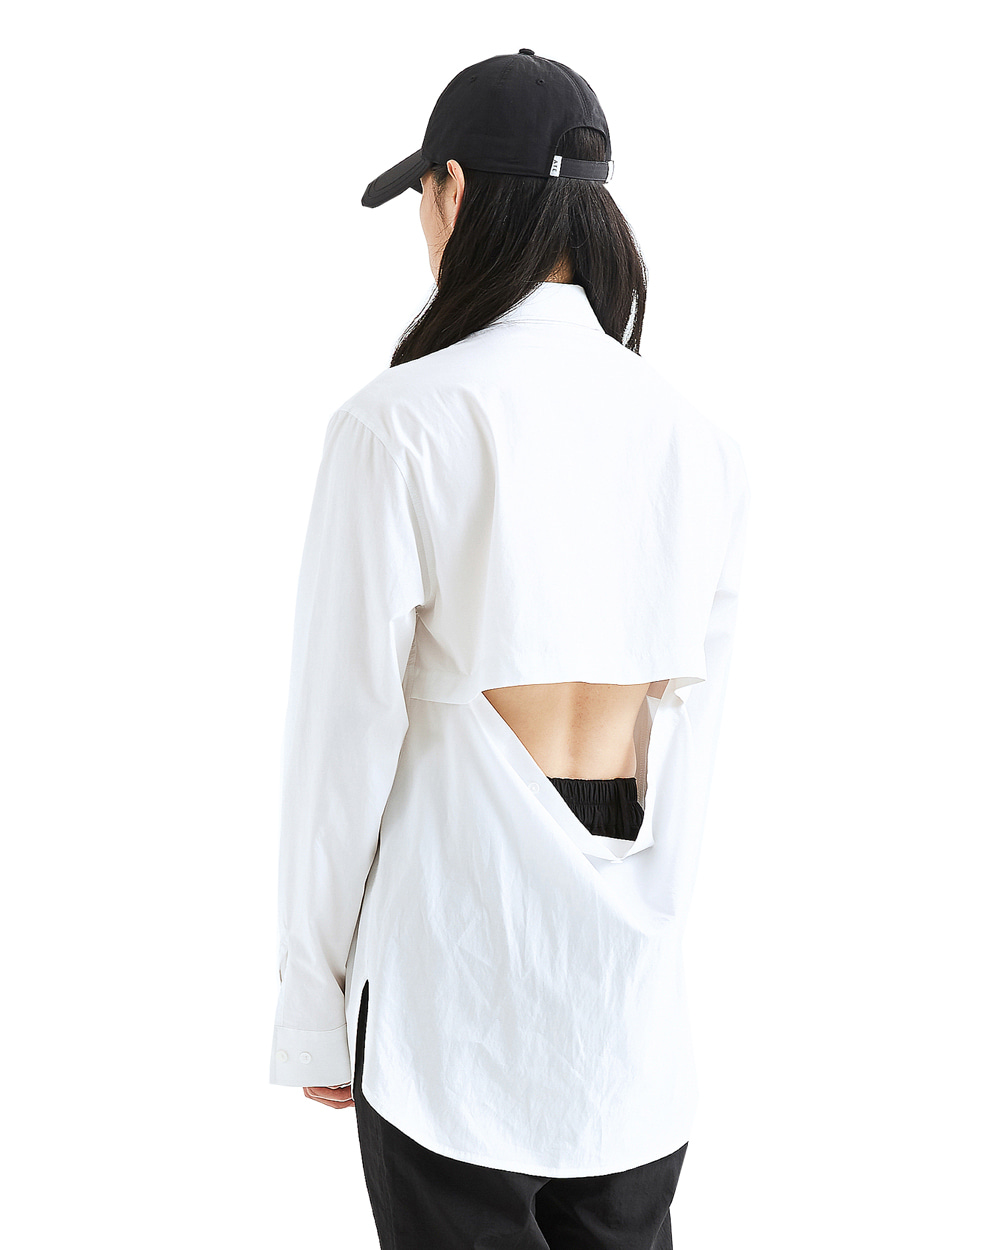 ATE STUDIO MULTI OPEN SHIRTS VER.YOKE (White)